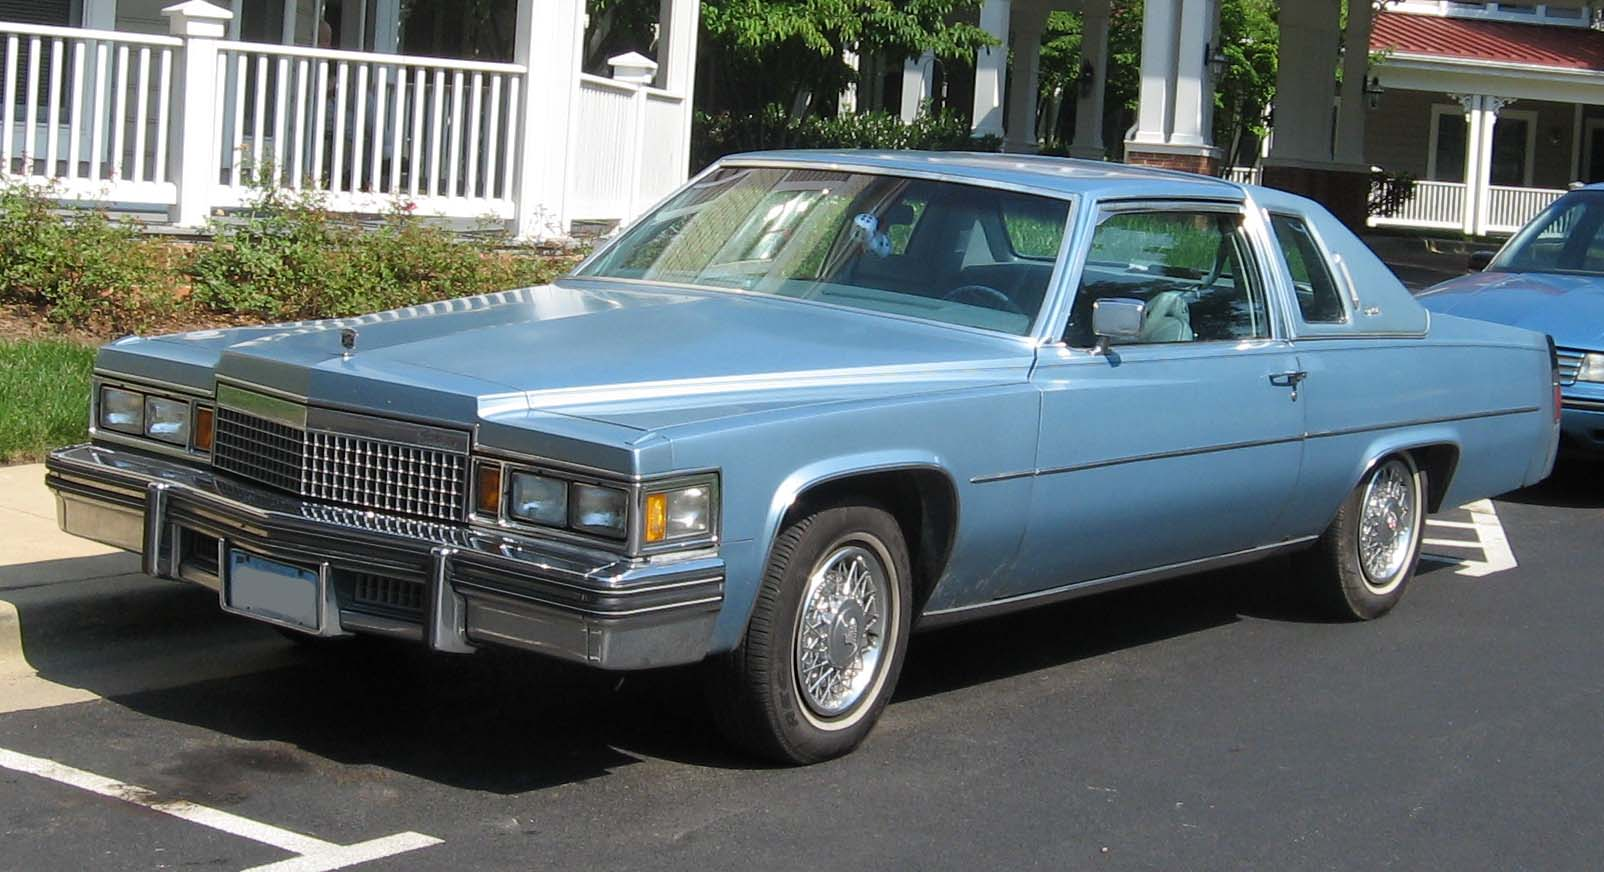 1977 cadillac deville information and photos momentcar. Cars Review. Best American Auto & Cars Review